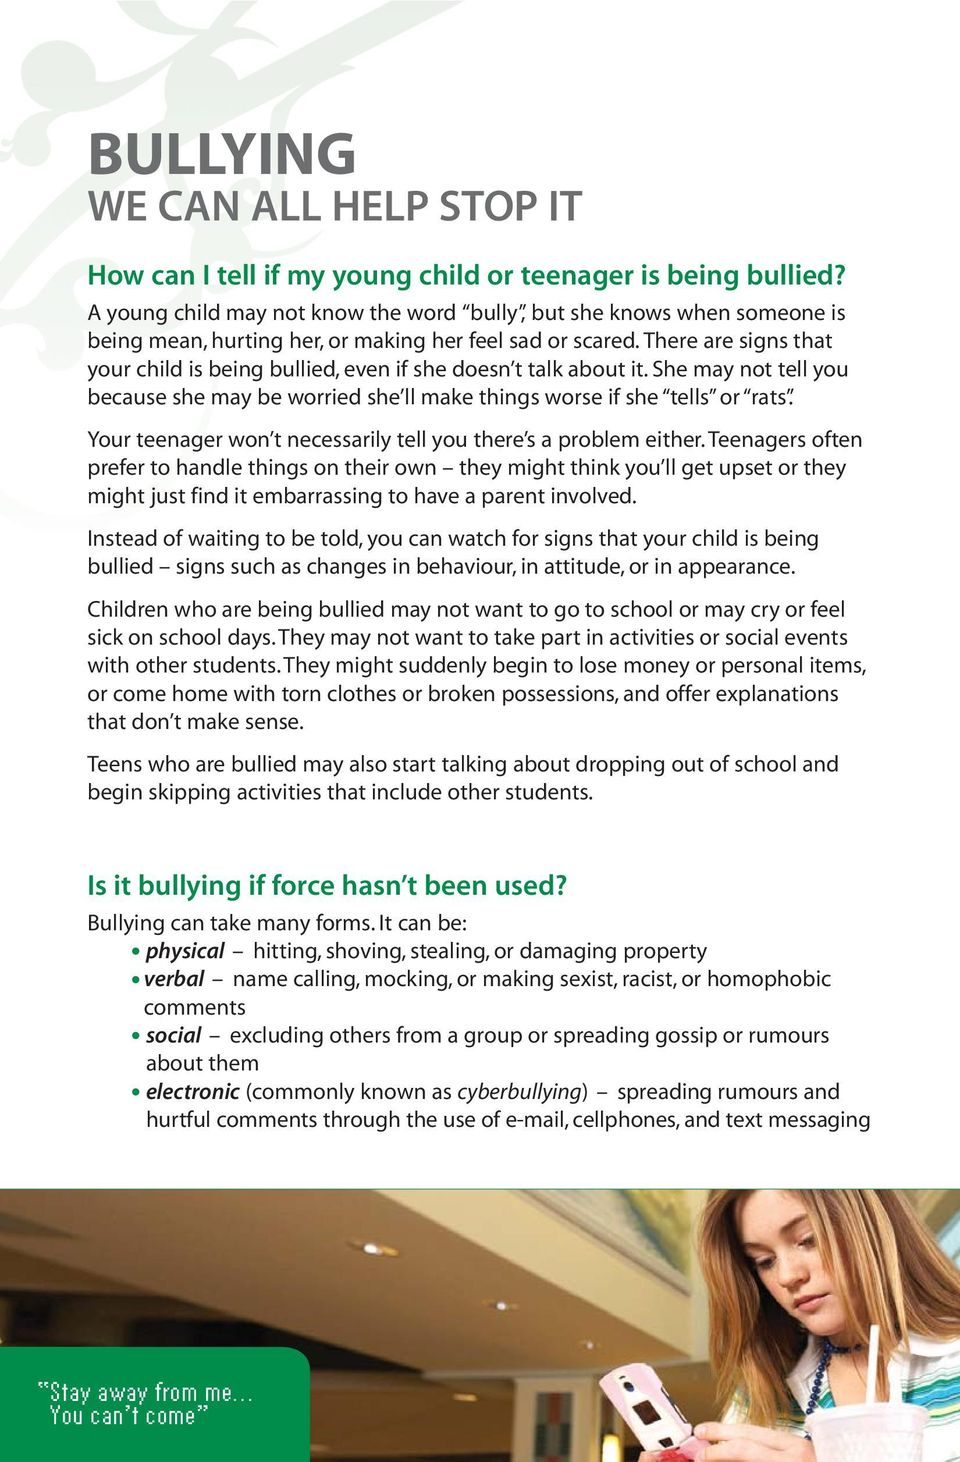 There are signs that your child is being bullied, even if she doesn t talk about it. She may not tell you because she may be worried she ll make things worse if she tells or rats.